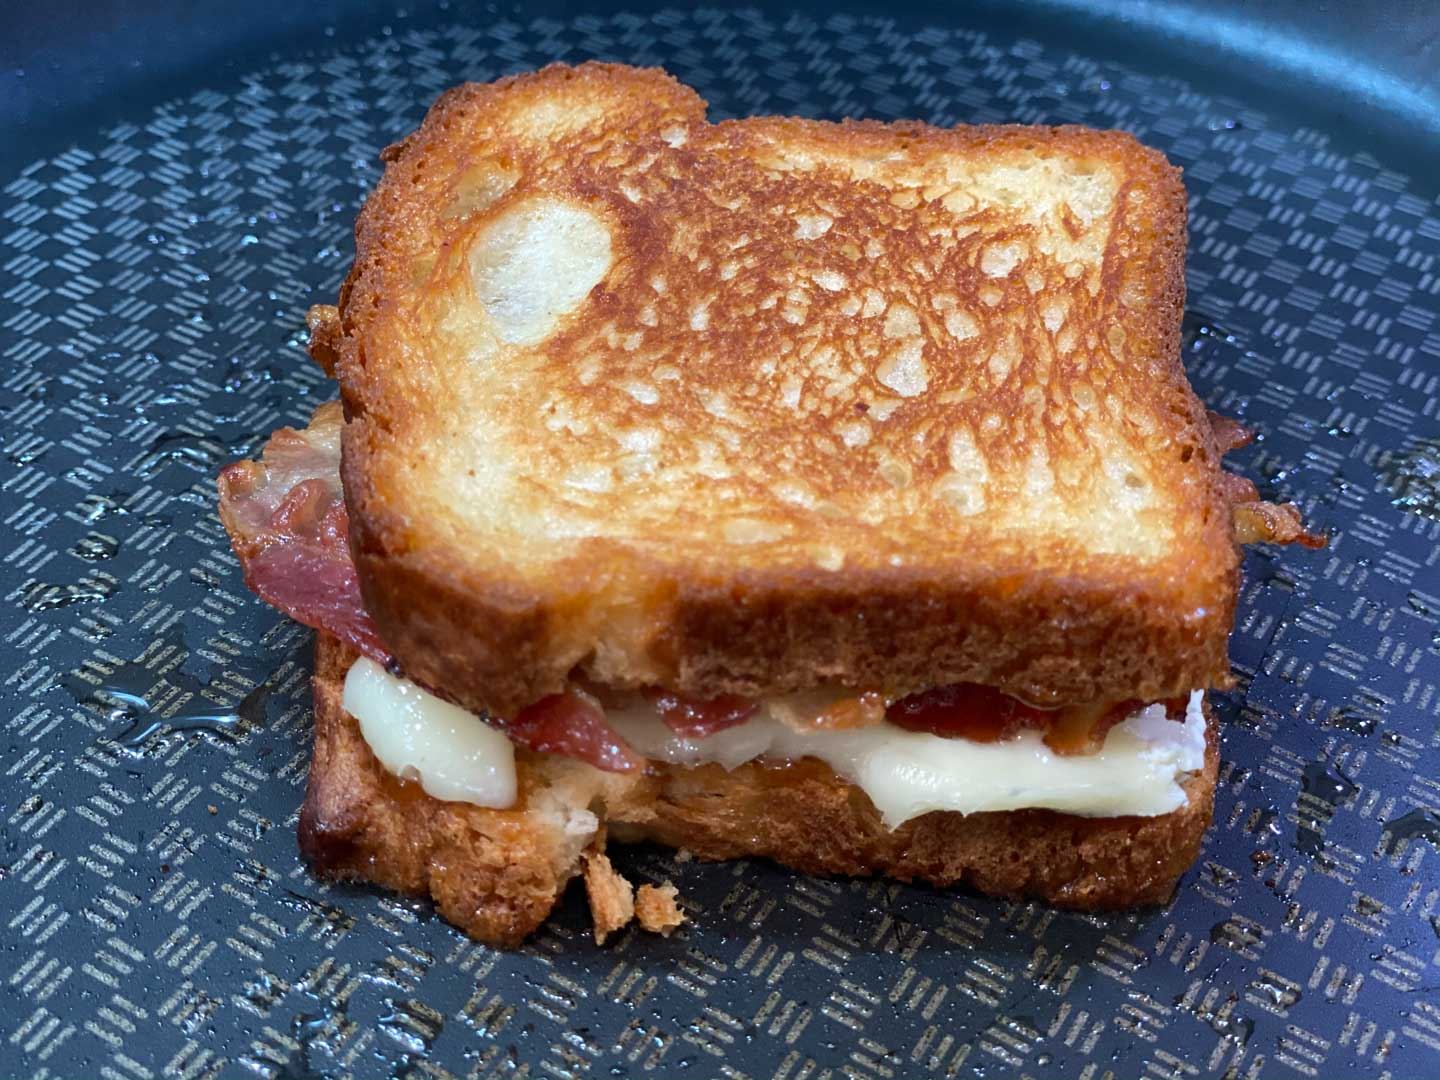 Grilled cheese in a saute pan with fig spread, brie, and bacon.